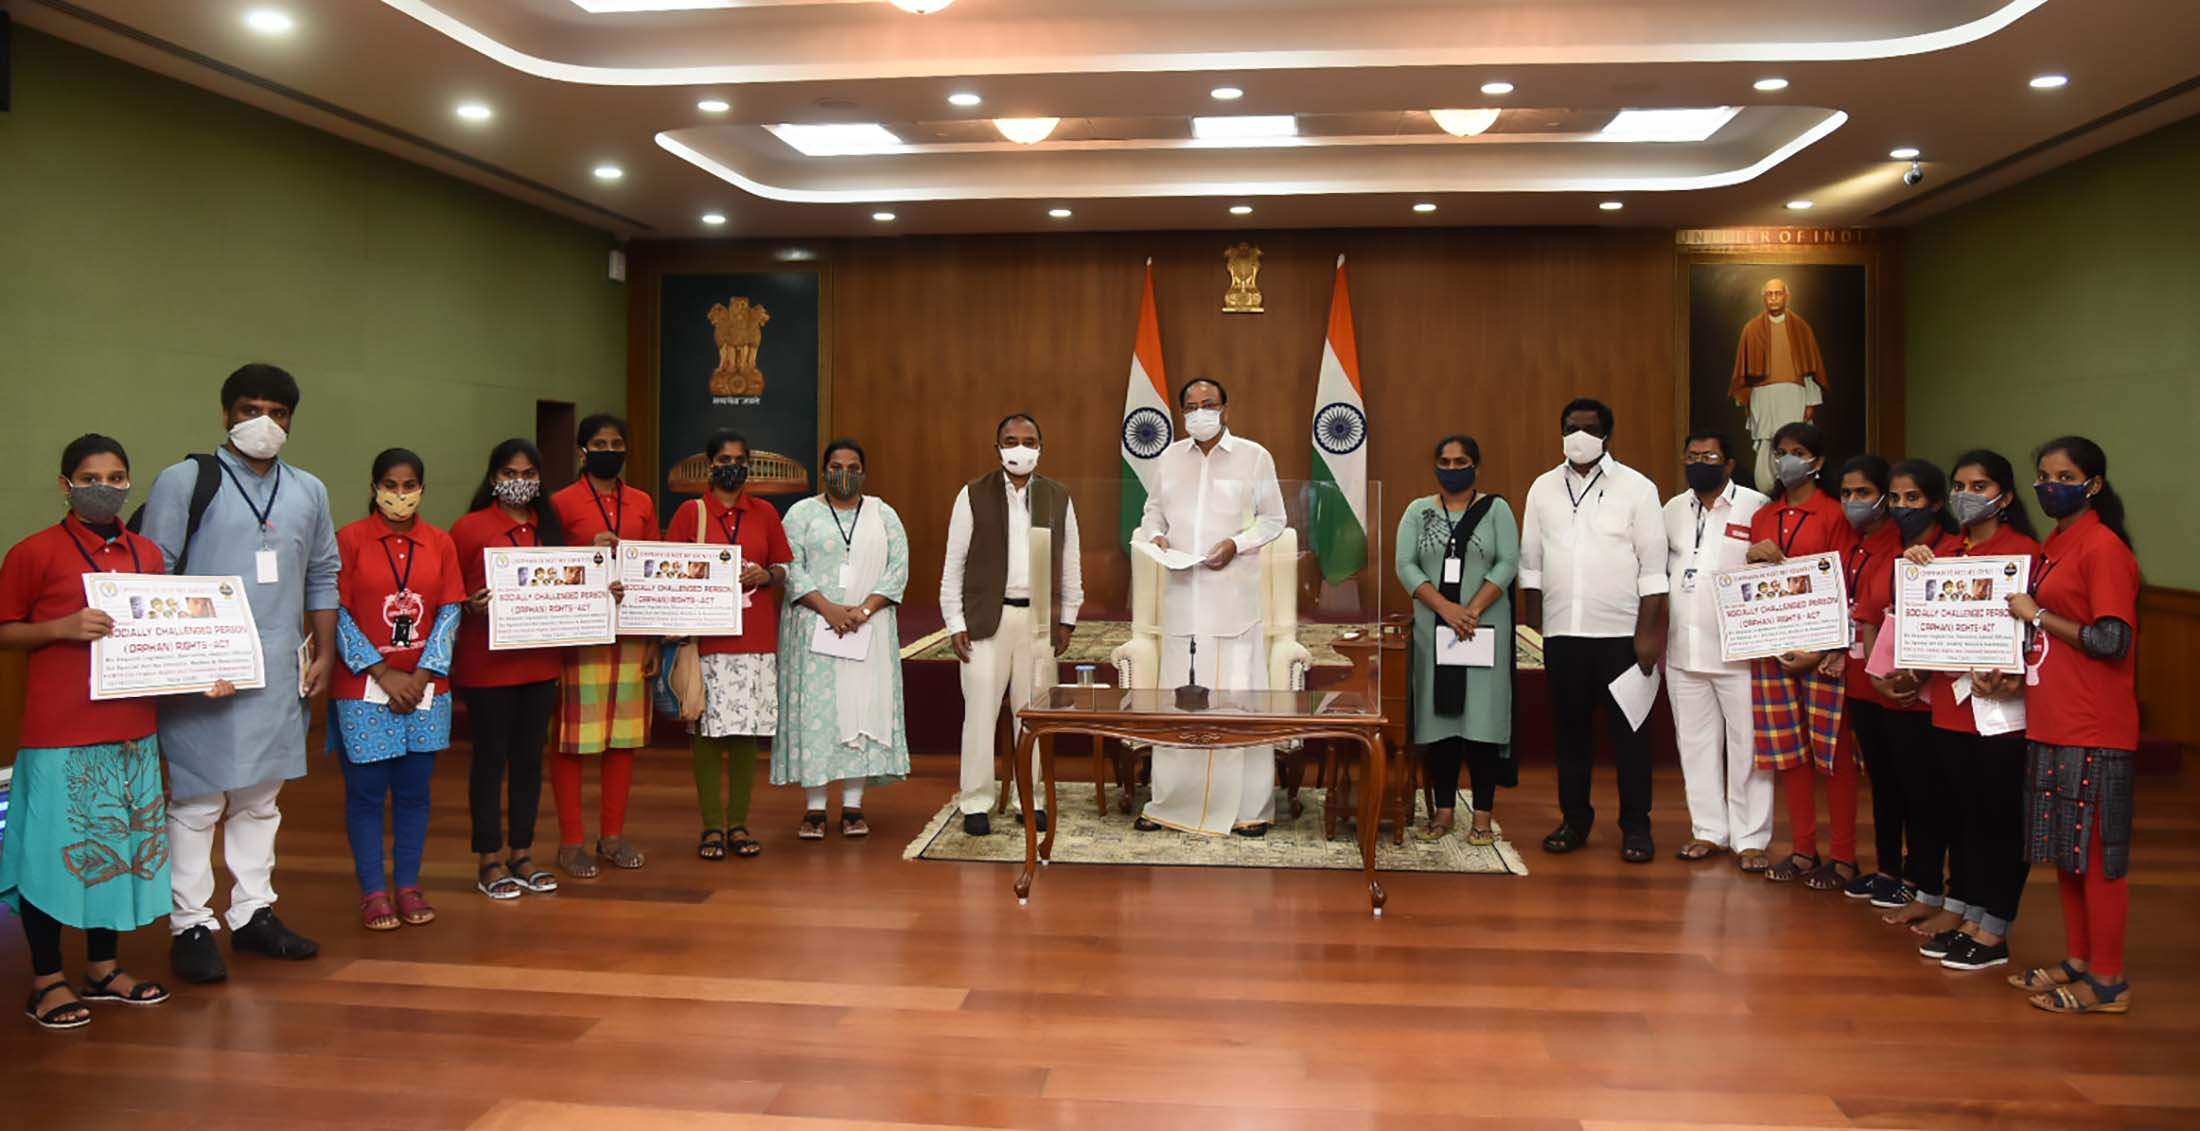 Rajya Sabha MP, Dr. Banda Prakash along with a group of children from 'Force for Orphan Rights and Community Empowerment (FORCE)' called on the Vice President, Shri M. Venkaiah Naidu at Upa-Rashtrapati Nivas on August 2, 2021.